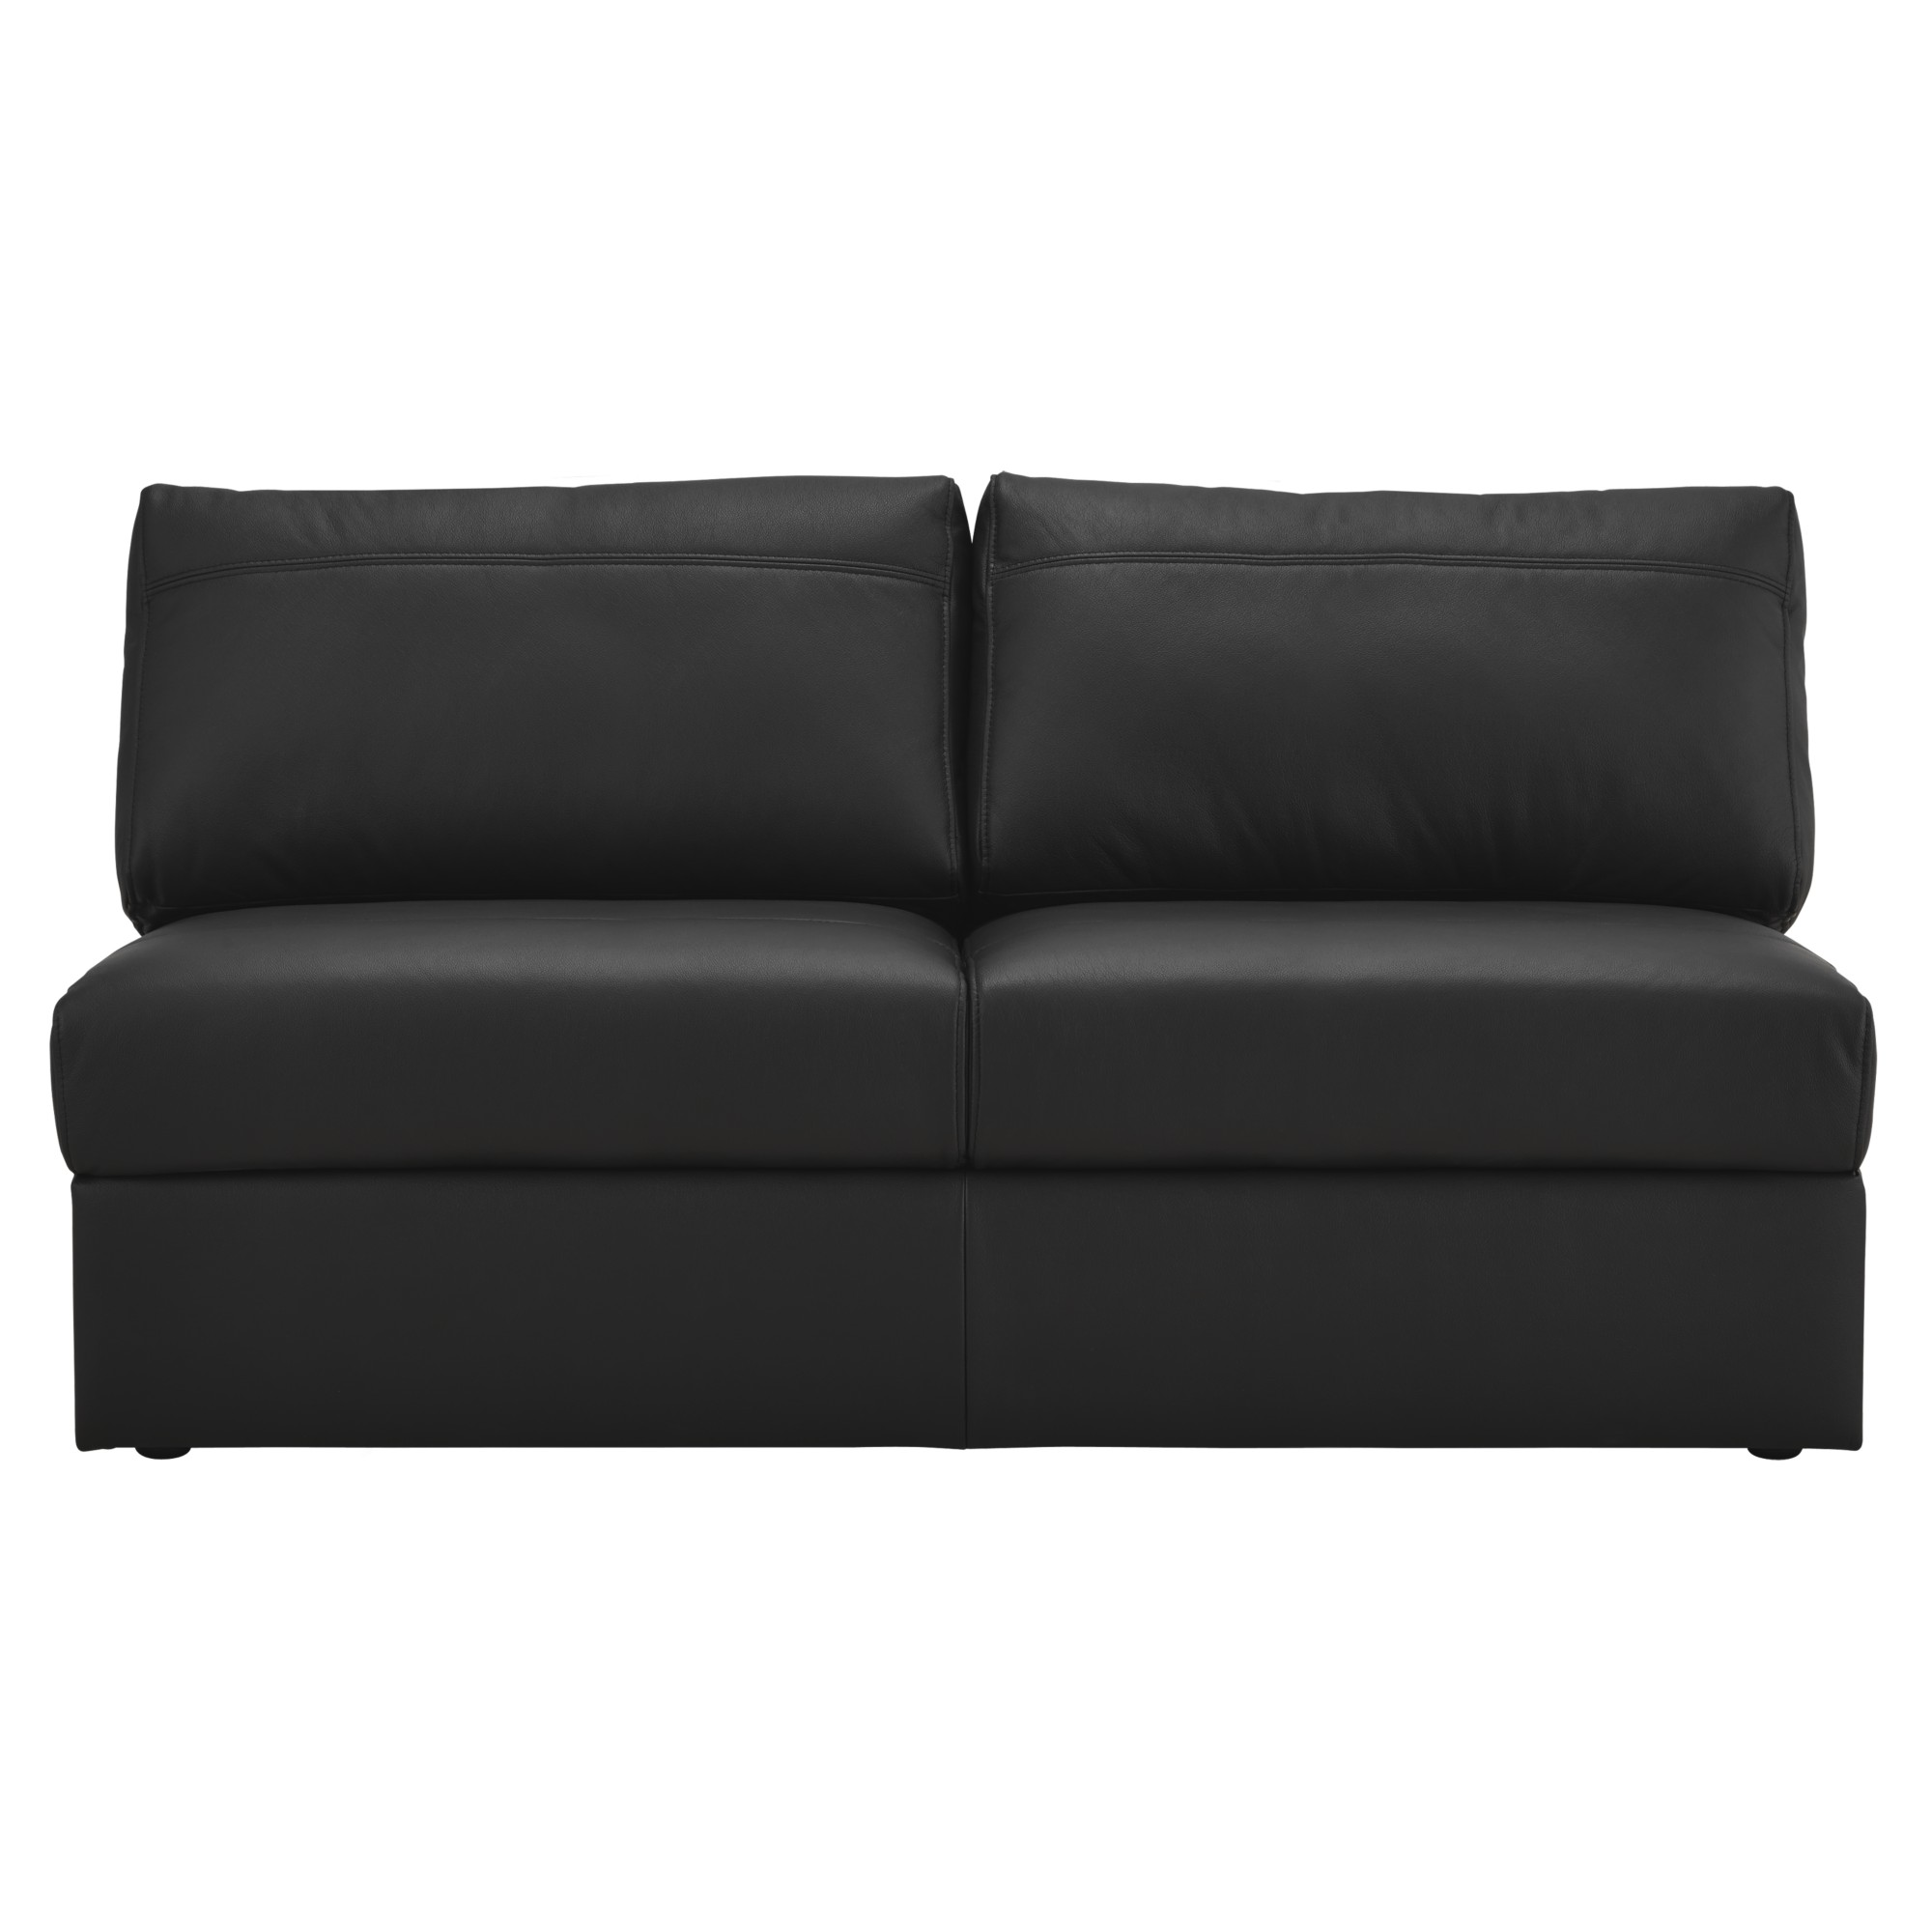 House by John Lewis Finlay II Large Armless Leather Unit